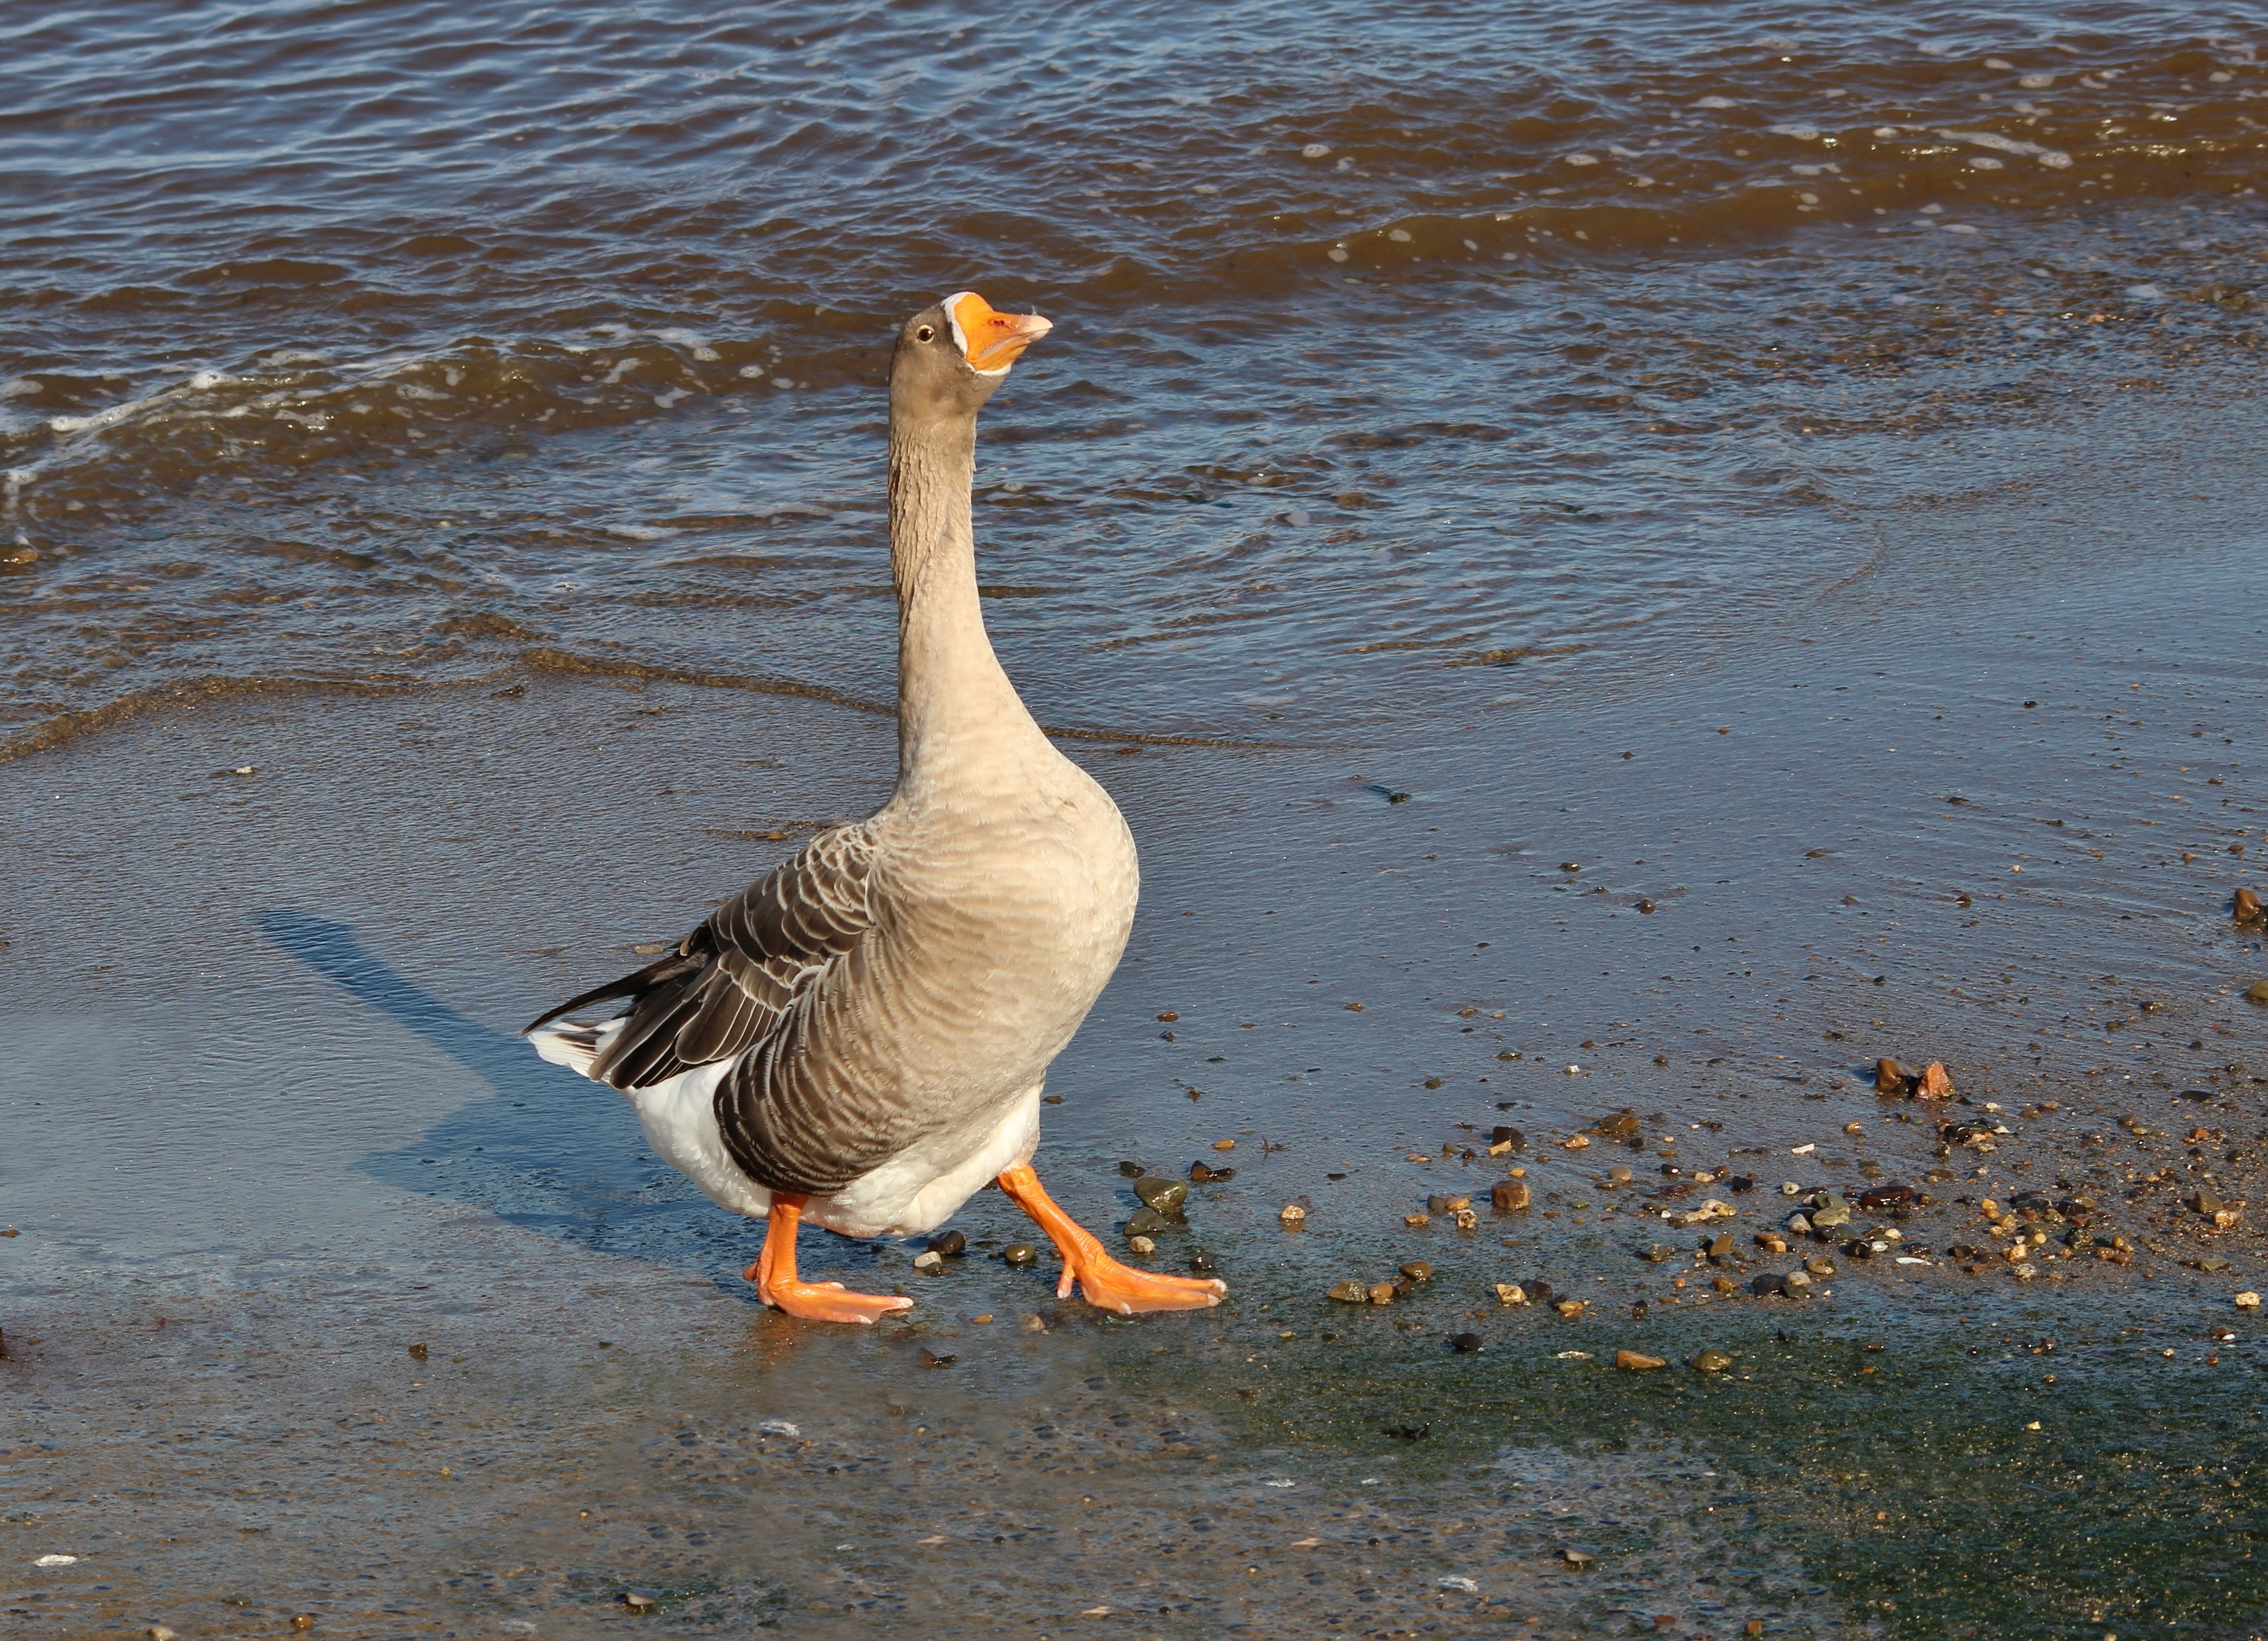 Proud Greylag Goose Walking on the Beach